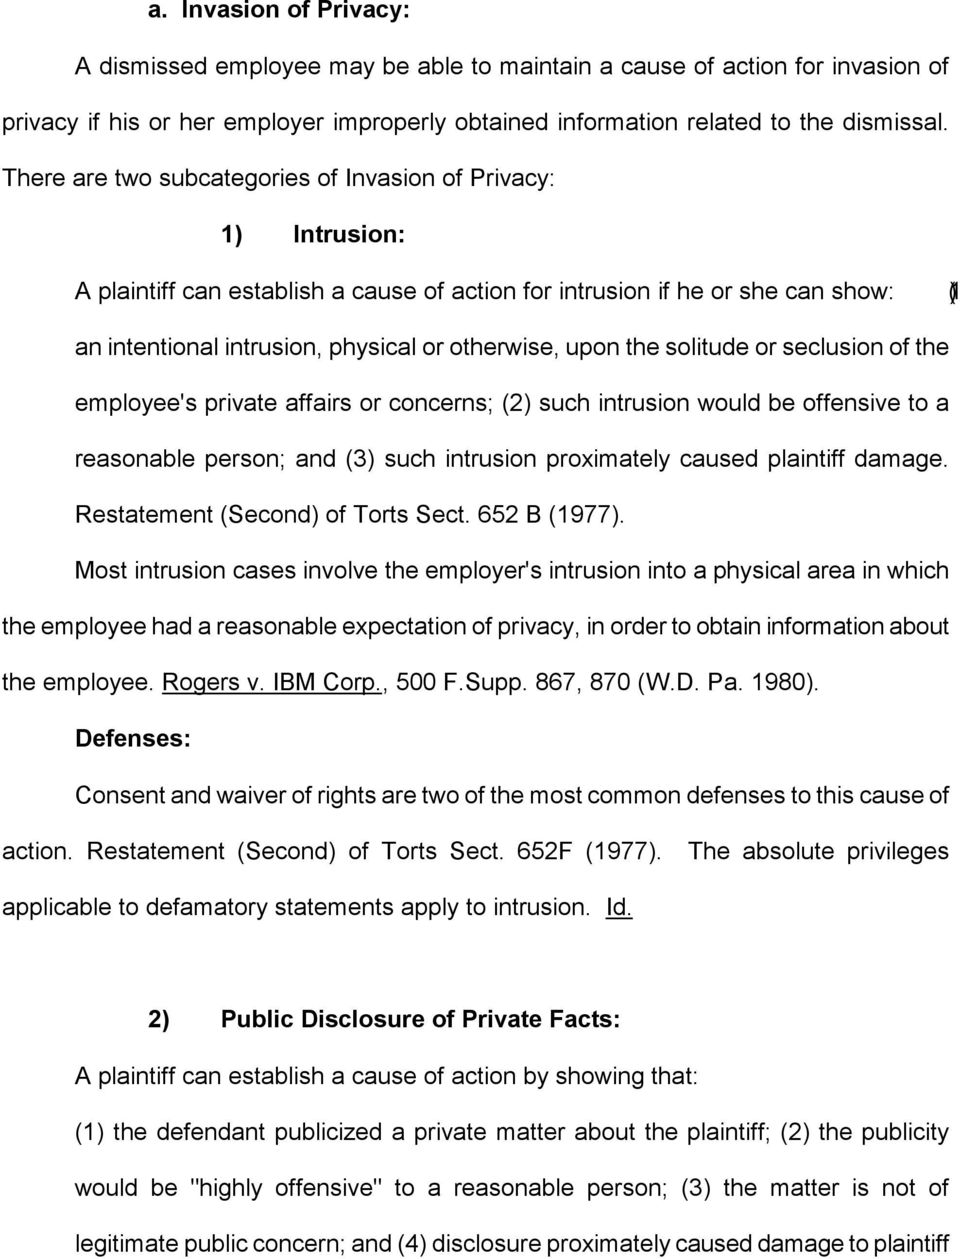 upon the solitude or seclusion of the employee's private affairs or concerns; (2) such intrusion would be offensive to a reasonable person; and (3) such intrusion proximately caused plaintiff damage.